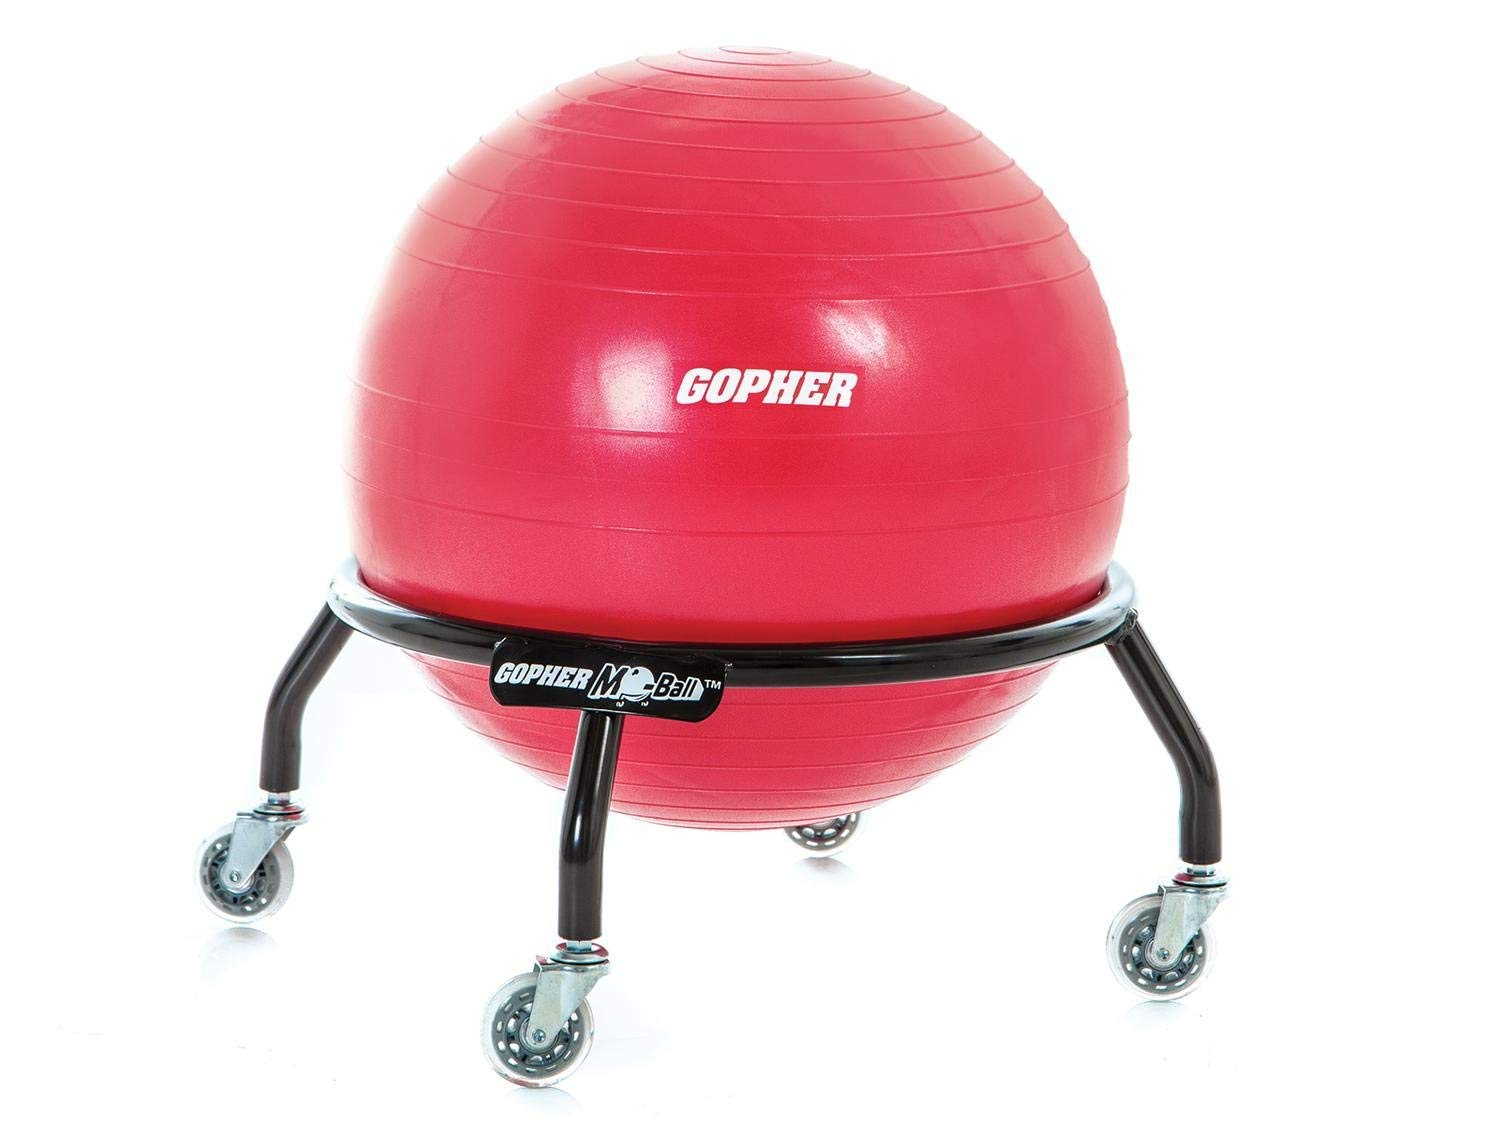 Gopher Mo-Ball Stability Ball Chair